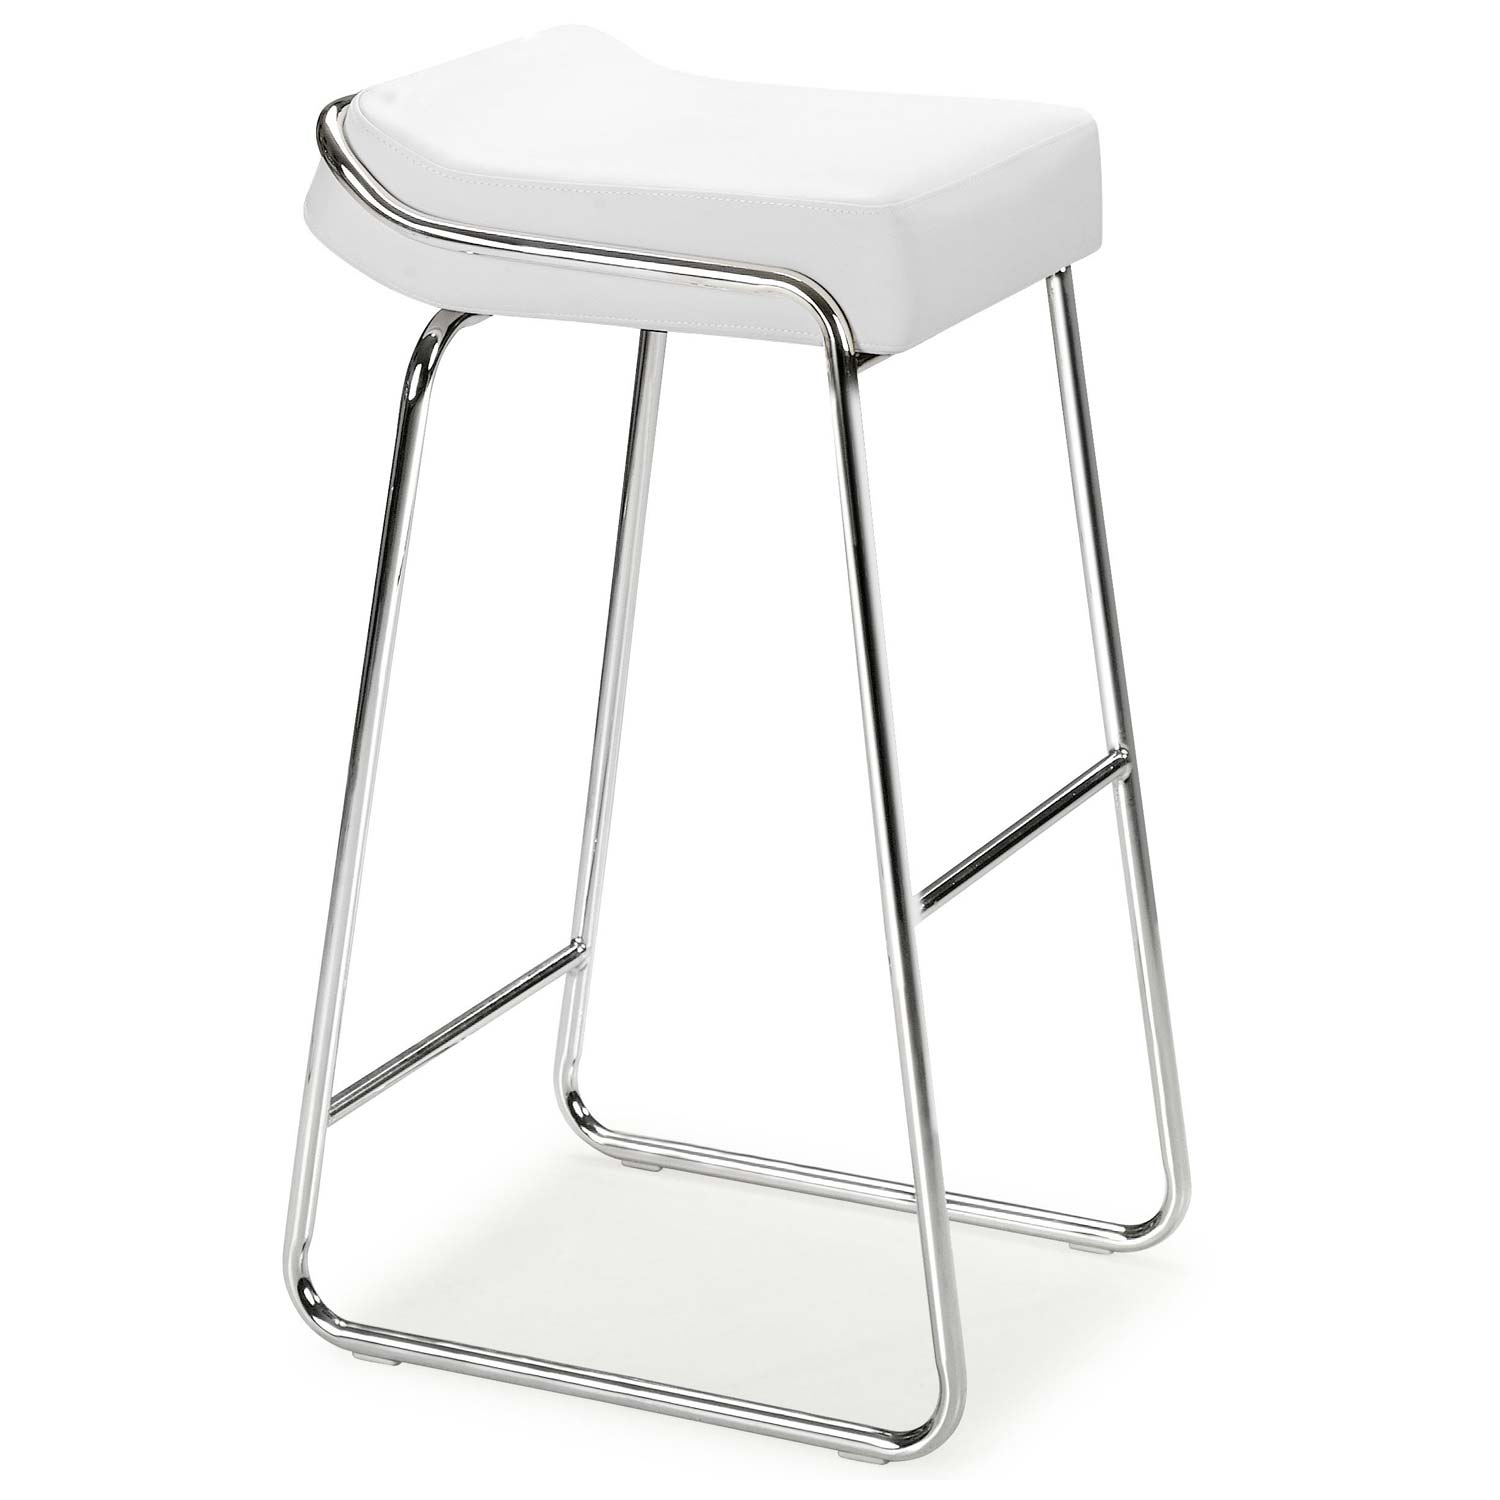 "Piano 32"" Backless Bar Stool - Chrome, Leatherette - ZM-30004X-PIANSTL"